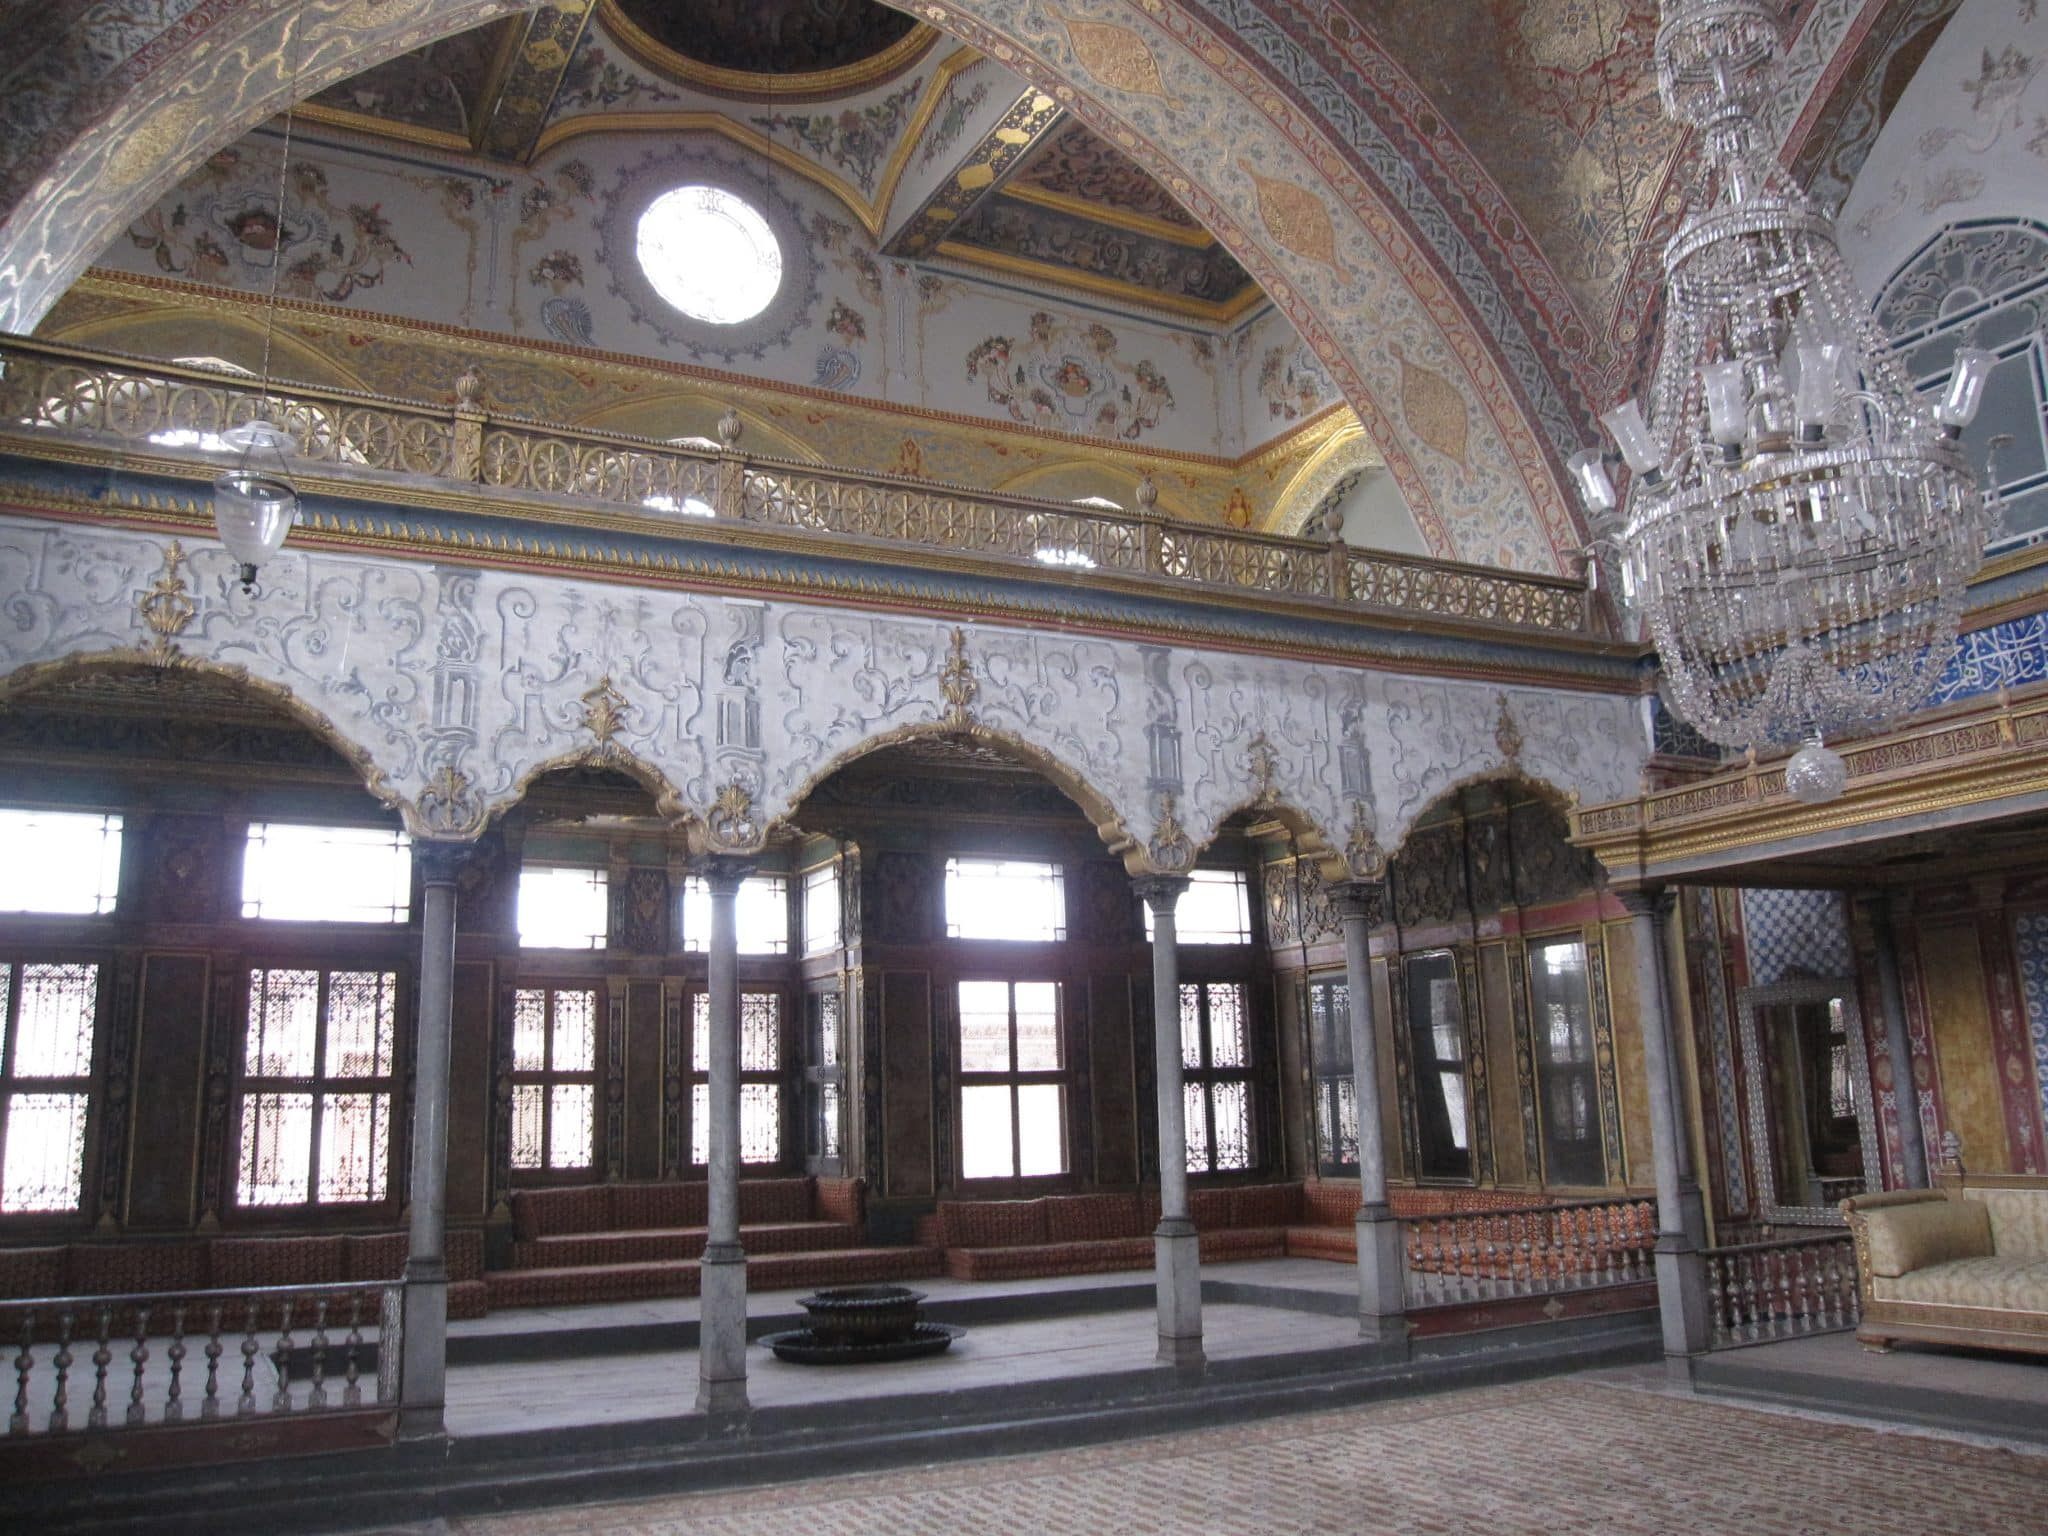 turkey-istanbul-topkapi-palace-harem-room-elaborate-interior